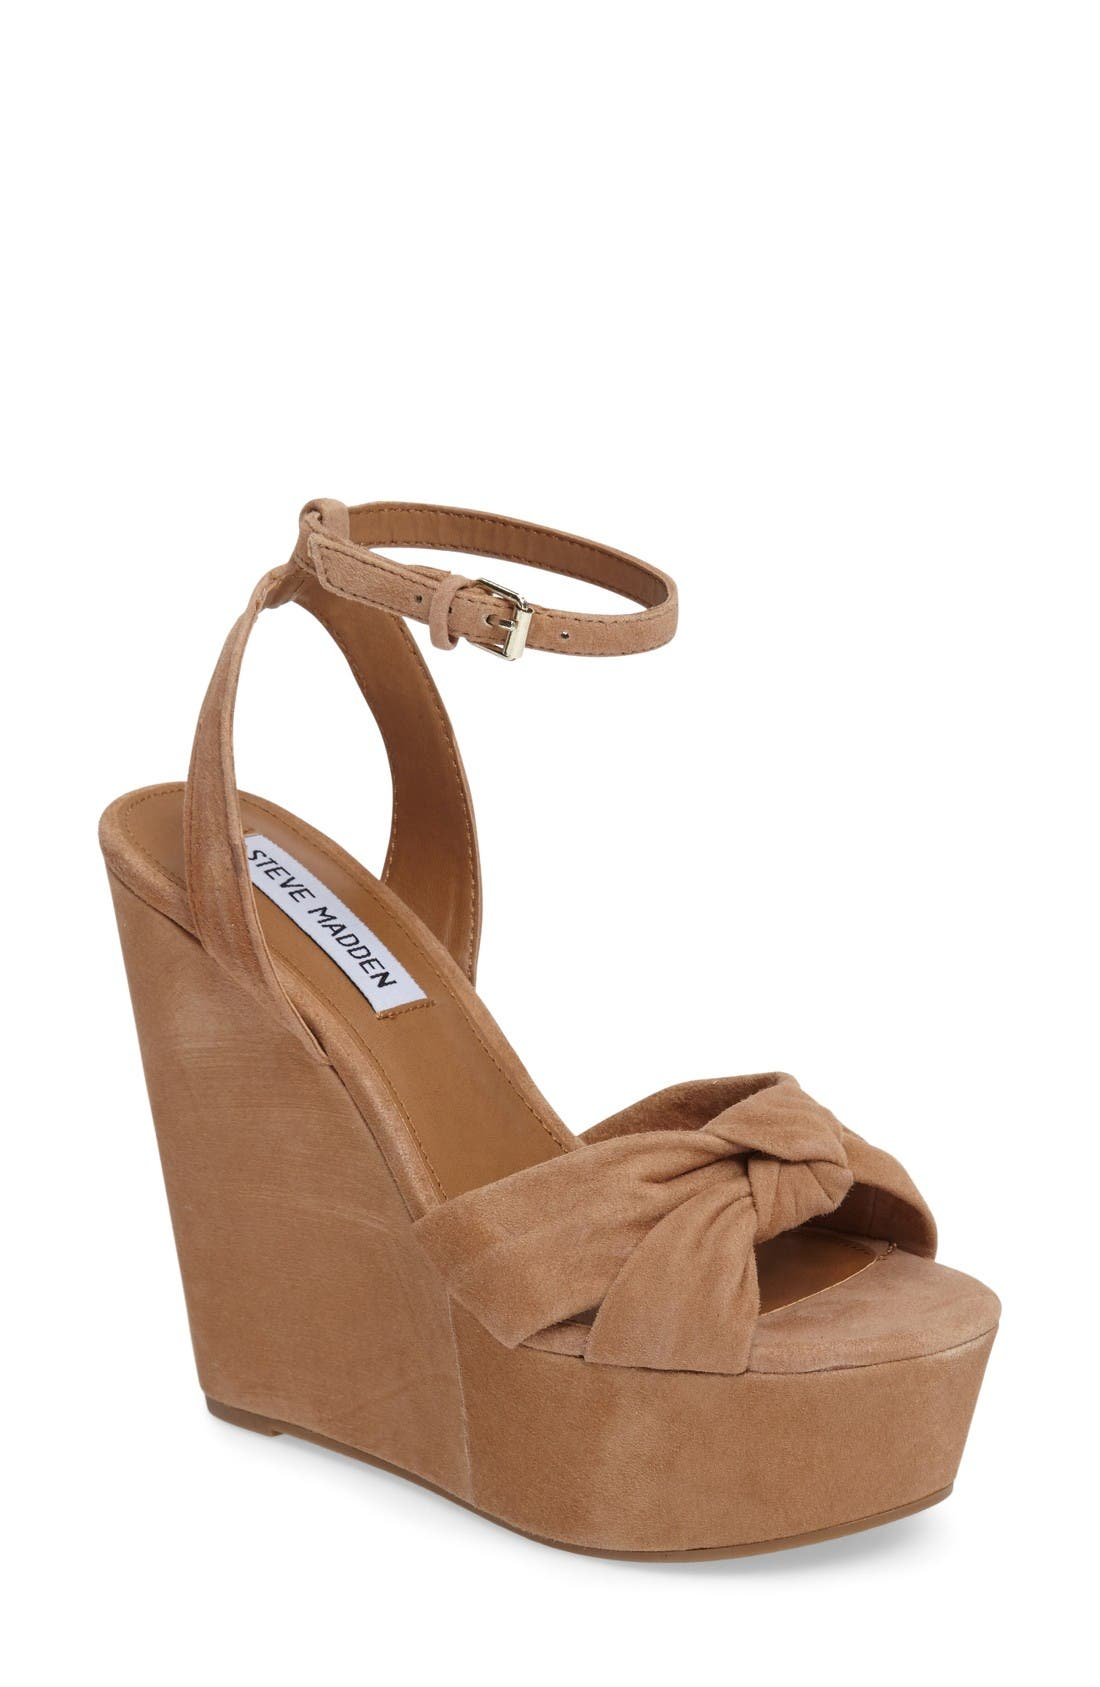 Alternate Image 1 Selected - Steve Madden Tylie Platform Wedge Sandal (Women)